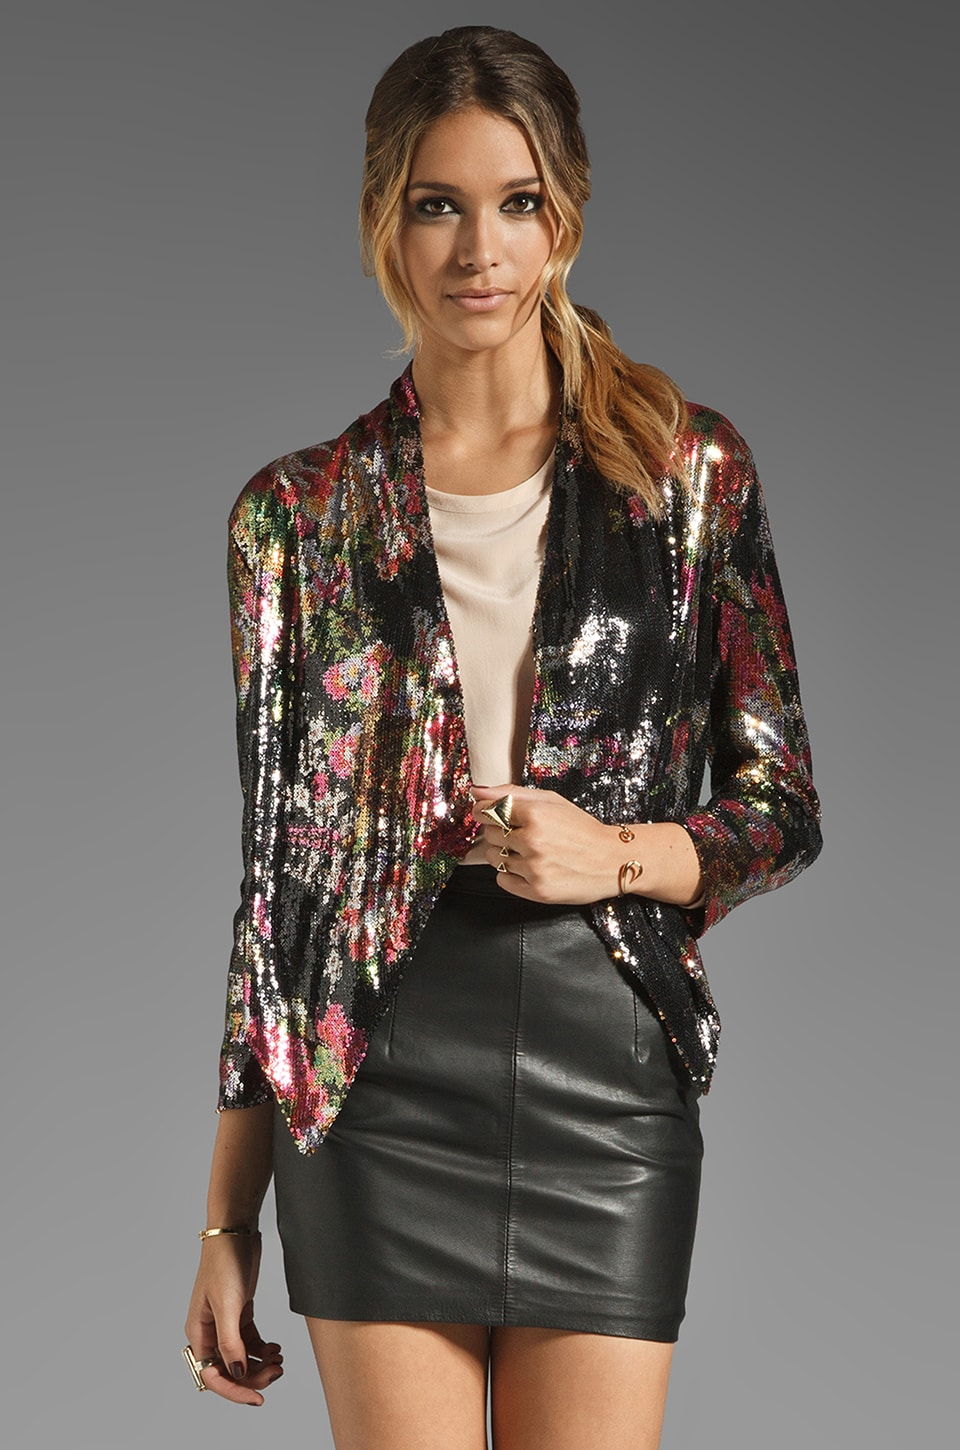 Lovers + Friends At First Sight jacket in Floral Sequin